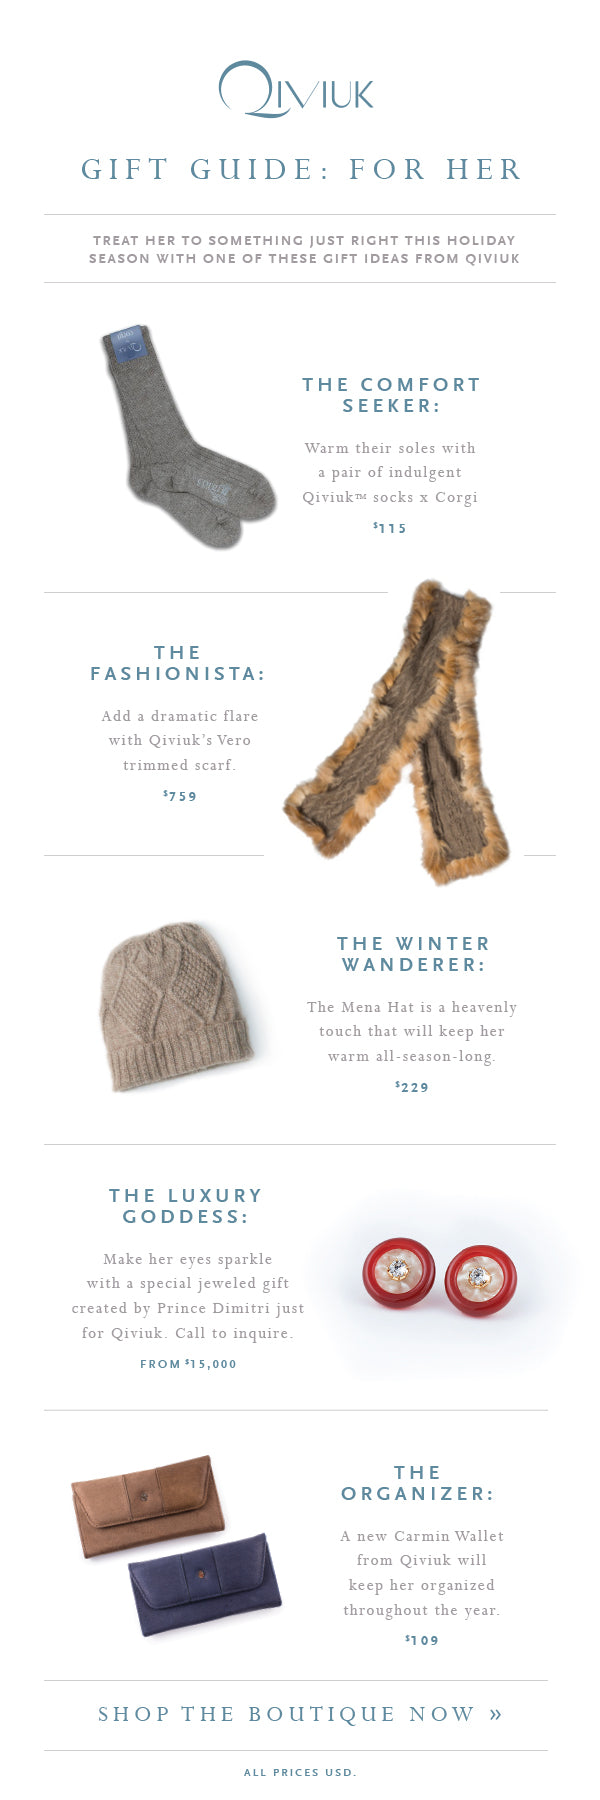 5 Great Gift Ideas for Her